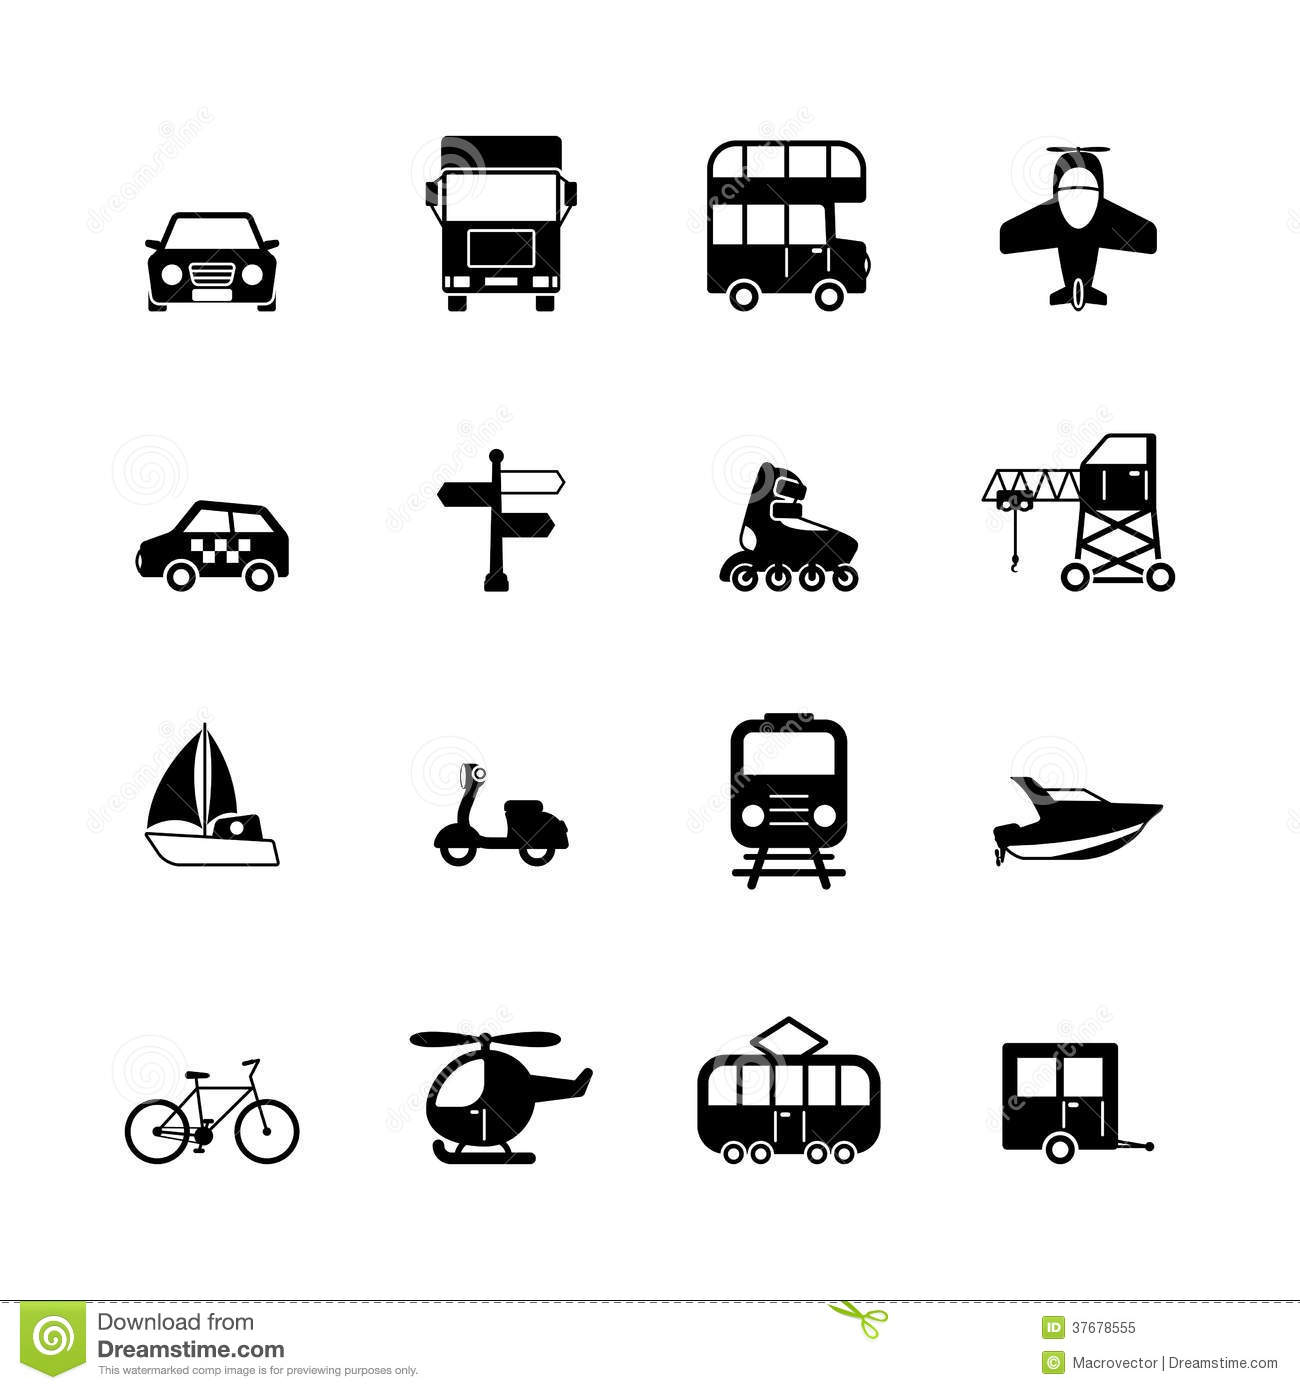 Stock Illustration Line Art Style Flat Graphical Set Web Site Mobile Interface Cafe Restaurant Fastfood Pizzeria Locator Booking Rating App Icons Image59052437 in addition Kakimoto Racing Aftermarket Decal Sticker also Rms 190w Darlington Oto  lifikator Tip142 Tip147 Sg3525 Konvertor together with Royalty Free Stock Photos Rental Agreement Form Pen Pic Image35815718 besides Door Timer With Alarm. on car audio application